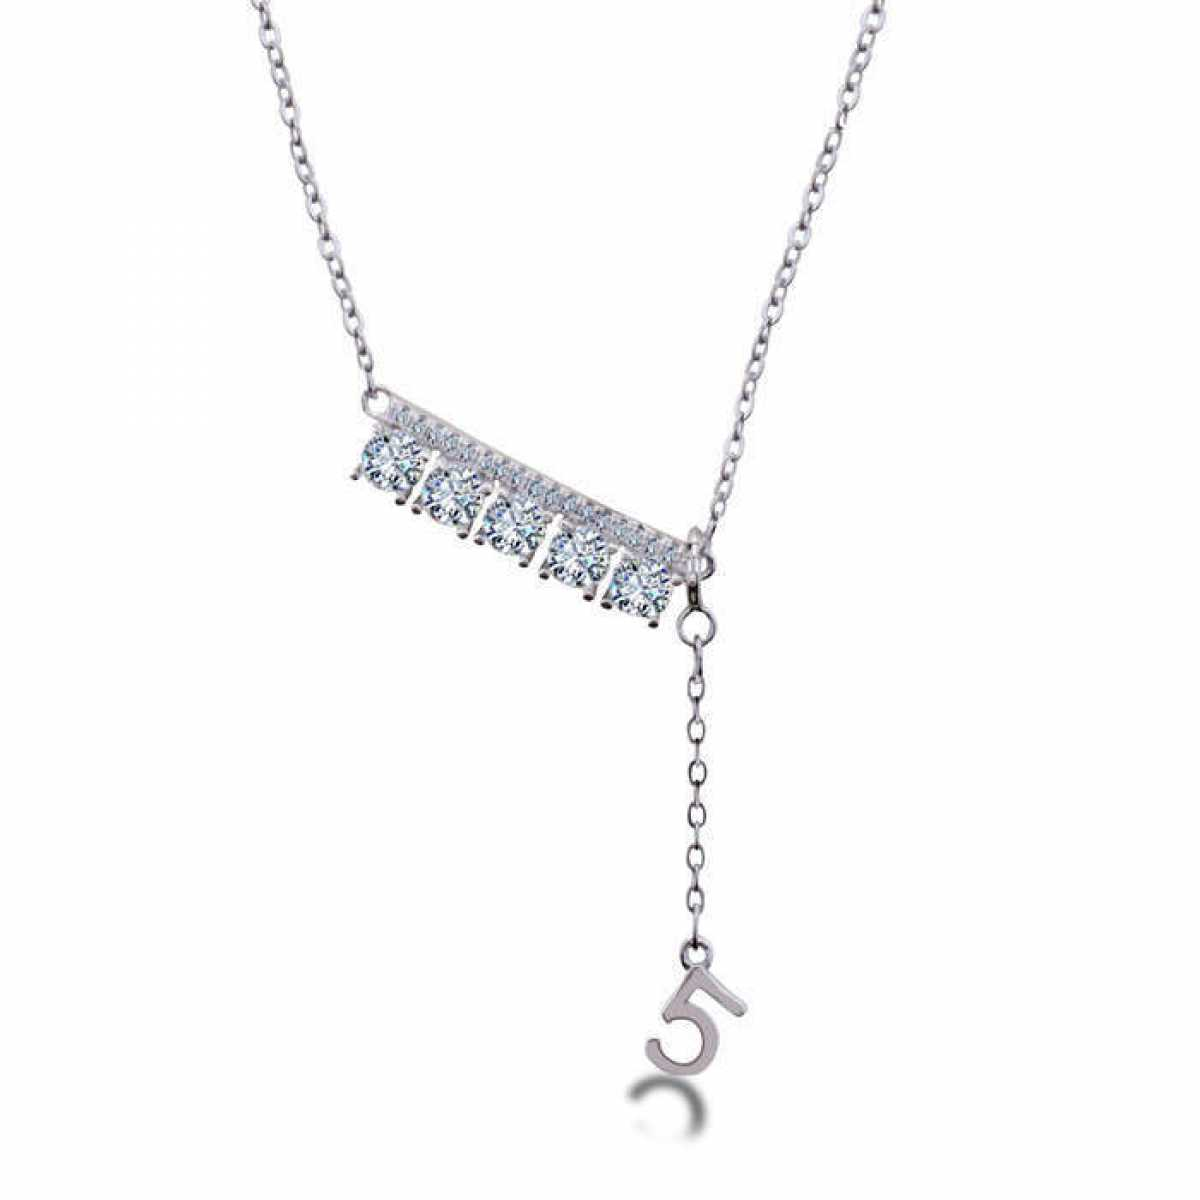 Hanging 5 Silver Diamond Chain